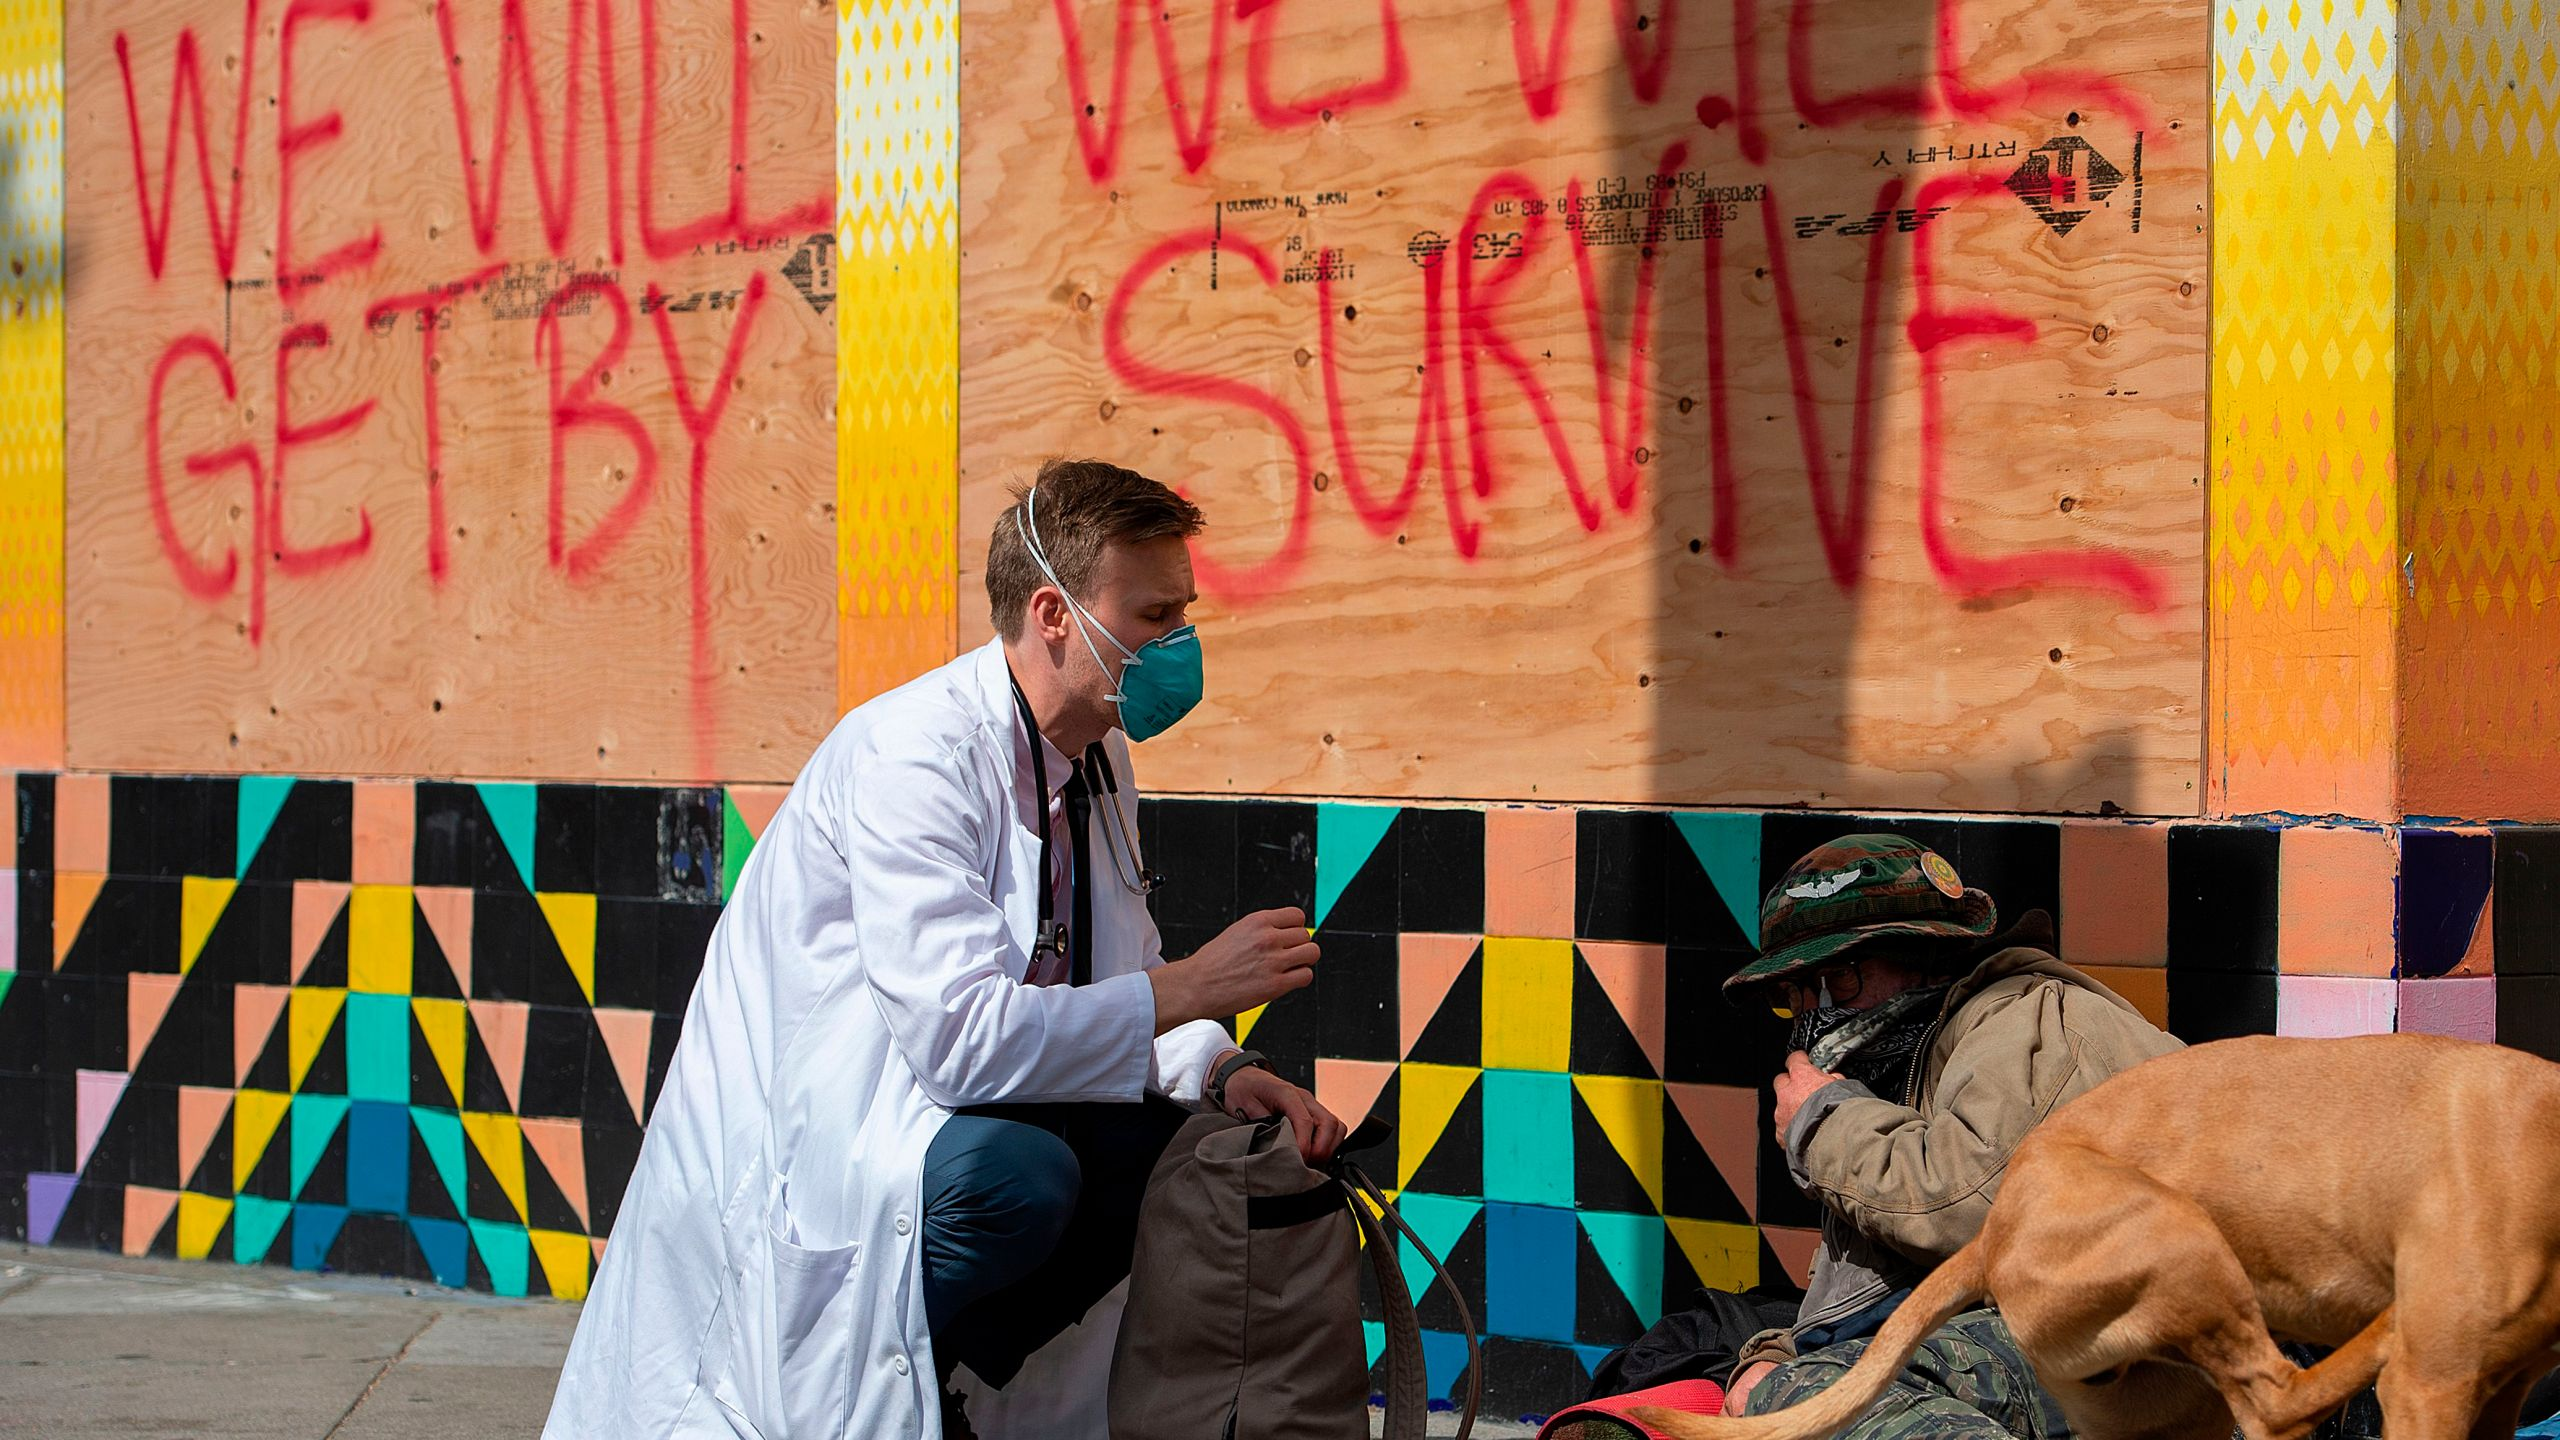 Stuart Malcolm, a doctor with the Haight Ashbury Free Clinic, speaks with homeless people in San Francisco about the coronavirus on March 17, 2020. (Credit: Josh Edelson / AFP / Getty Images)